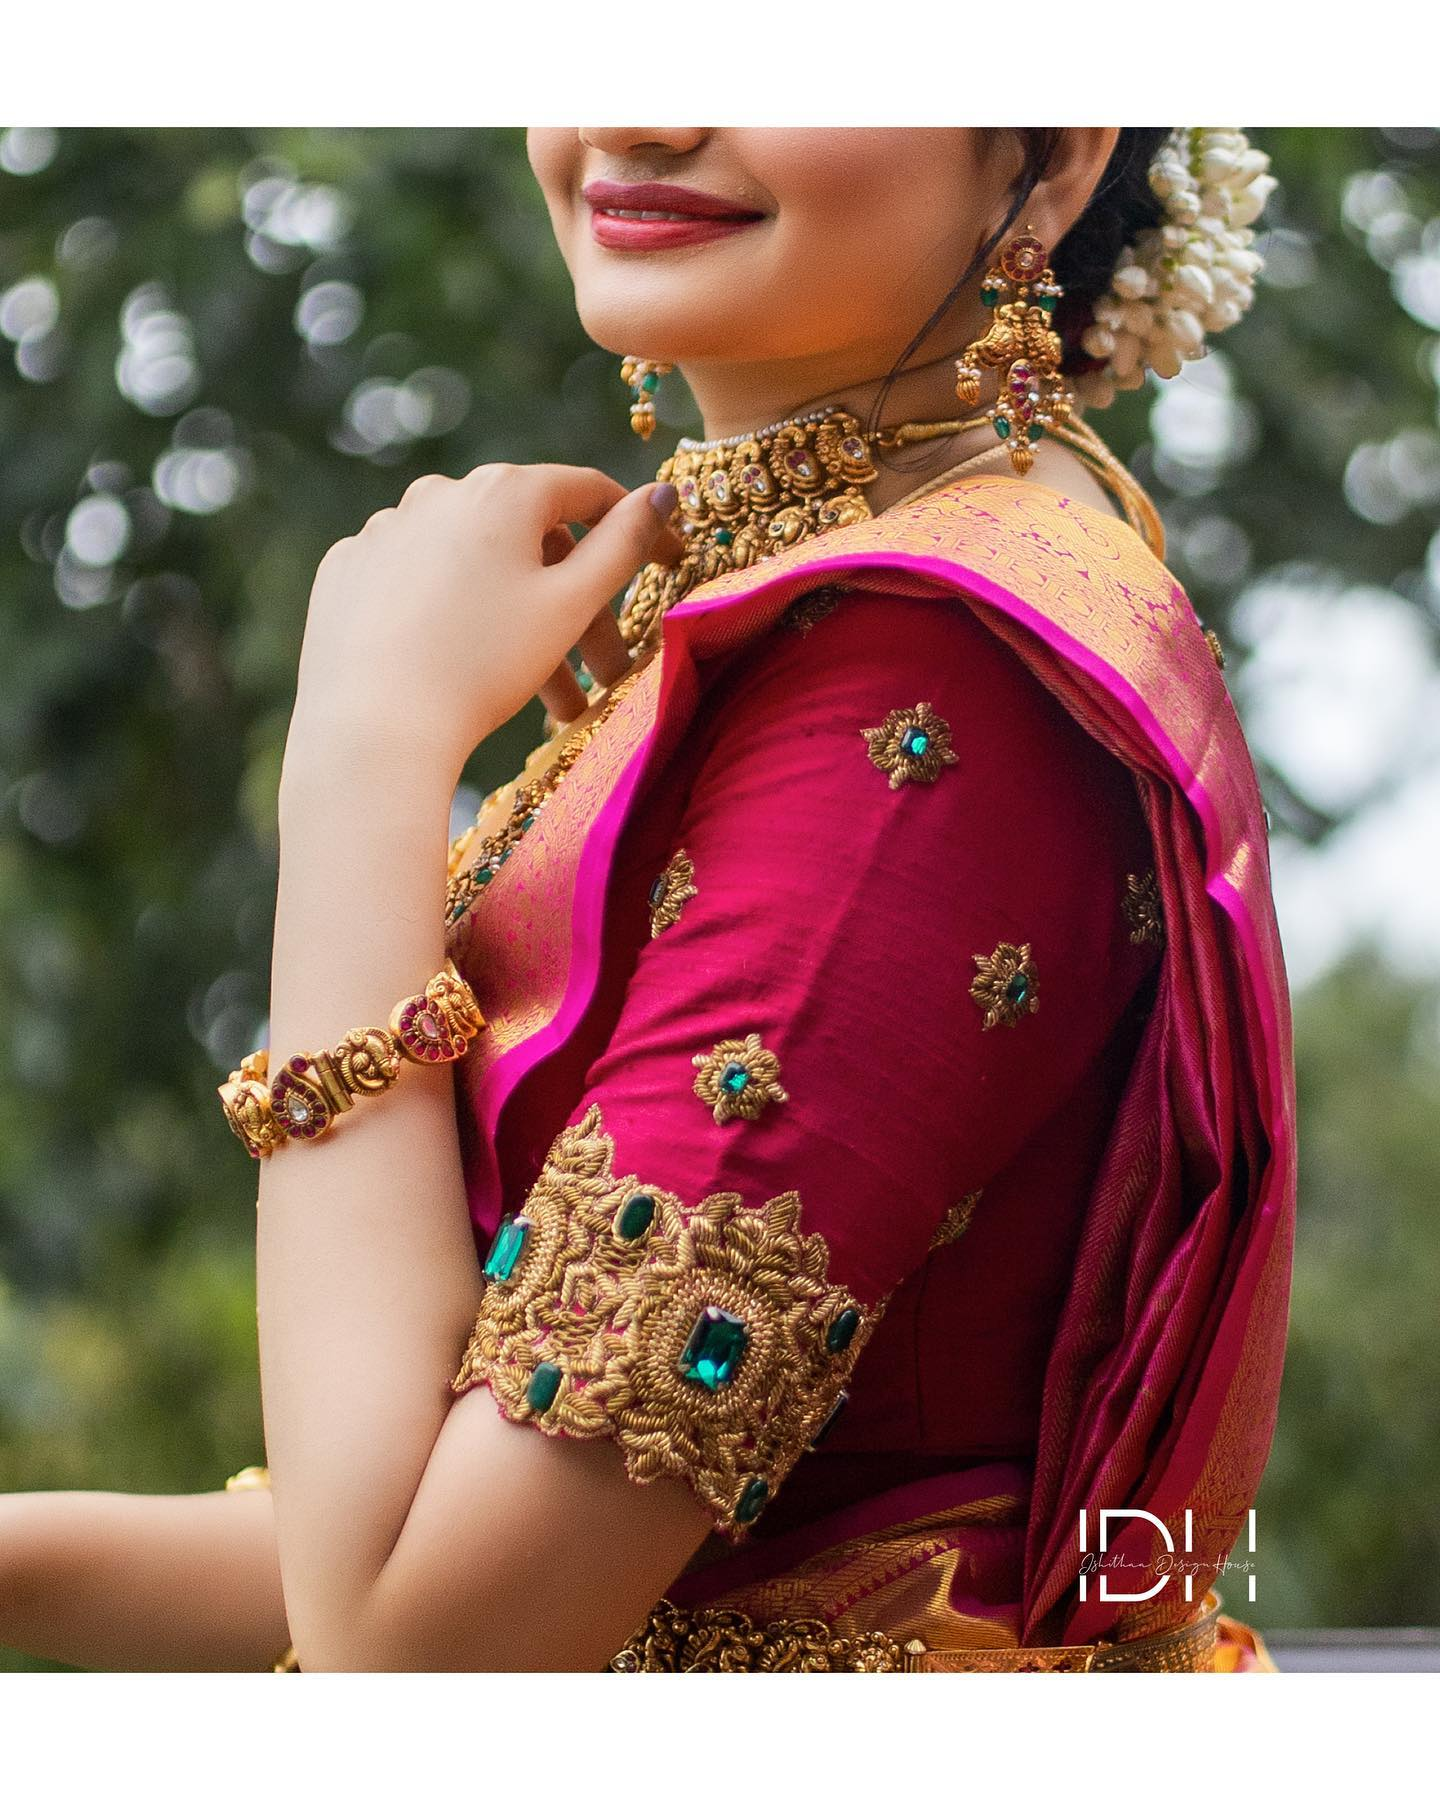 Stunning kanchi pattu matching bridal blouse with hand embroidery gold thread and emerald stone maggam work.  Stunning muse : Vaishaali Vijay. Blouse : Ishithaa design house . Saree : Aaryanair designs . Muah : Makeup Artistry by kavitha sekar . Jewellery: Theamethyst store . Photography: Nura photography.  . . Ping on 9884179863 to book an appointment.. 2021-08-01